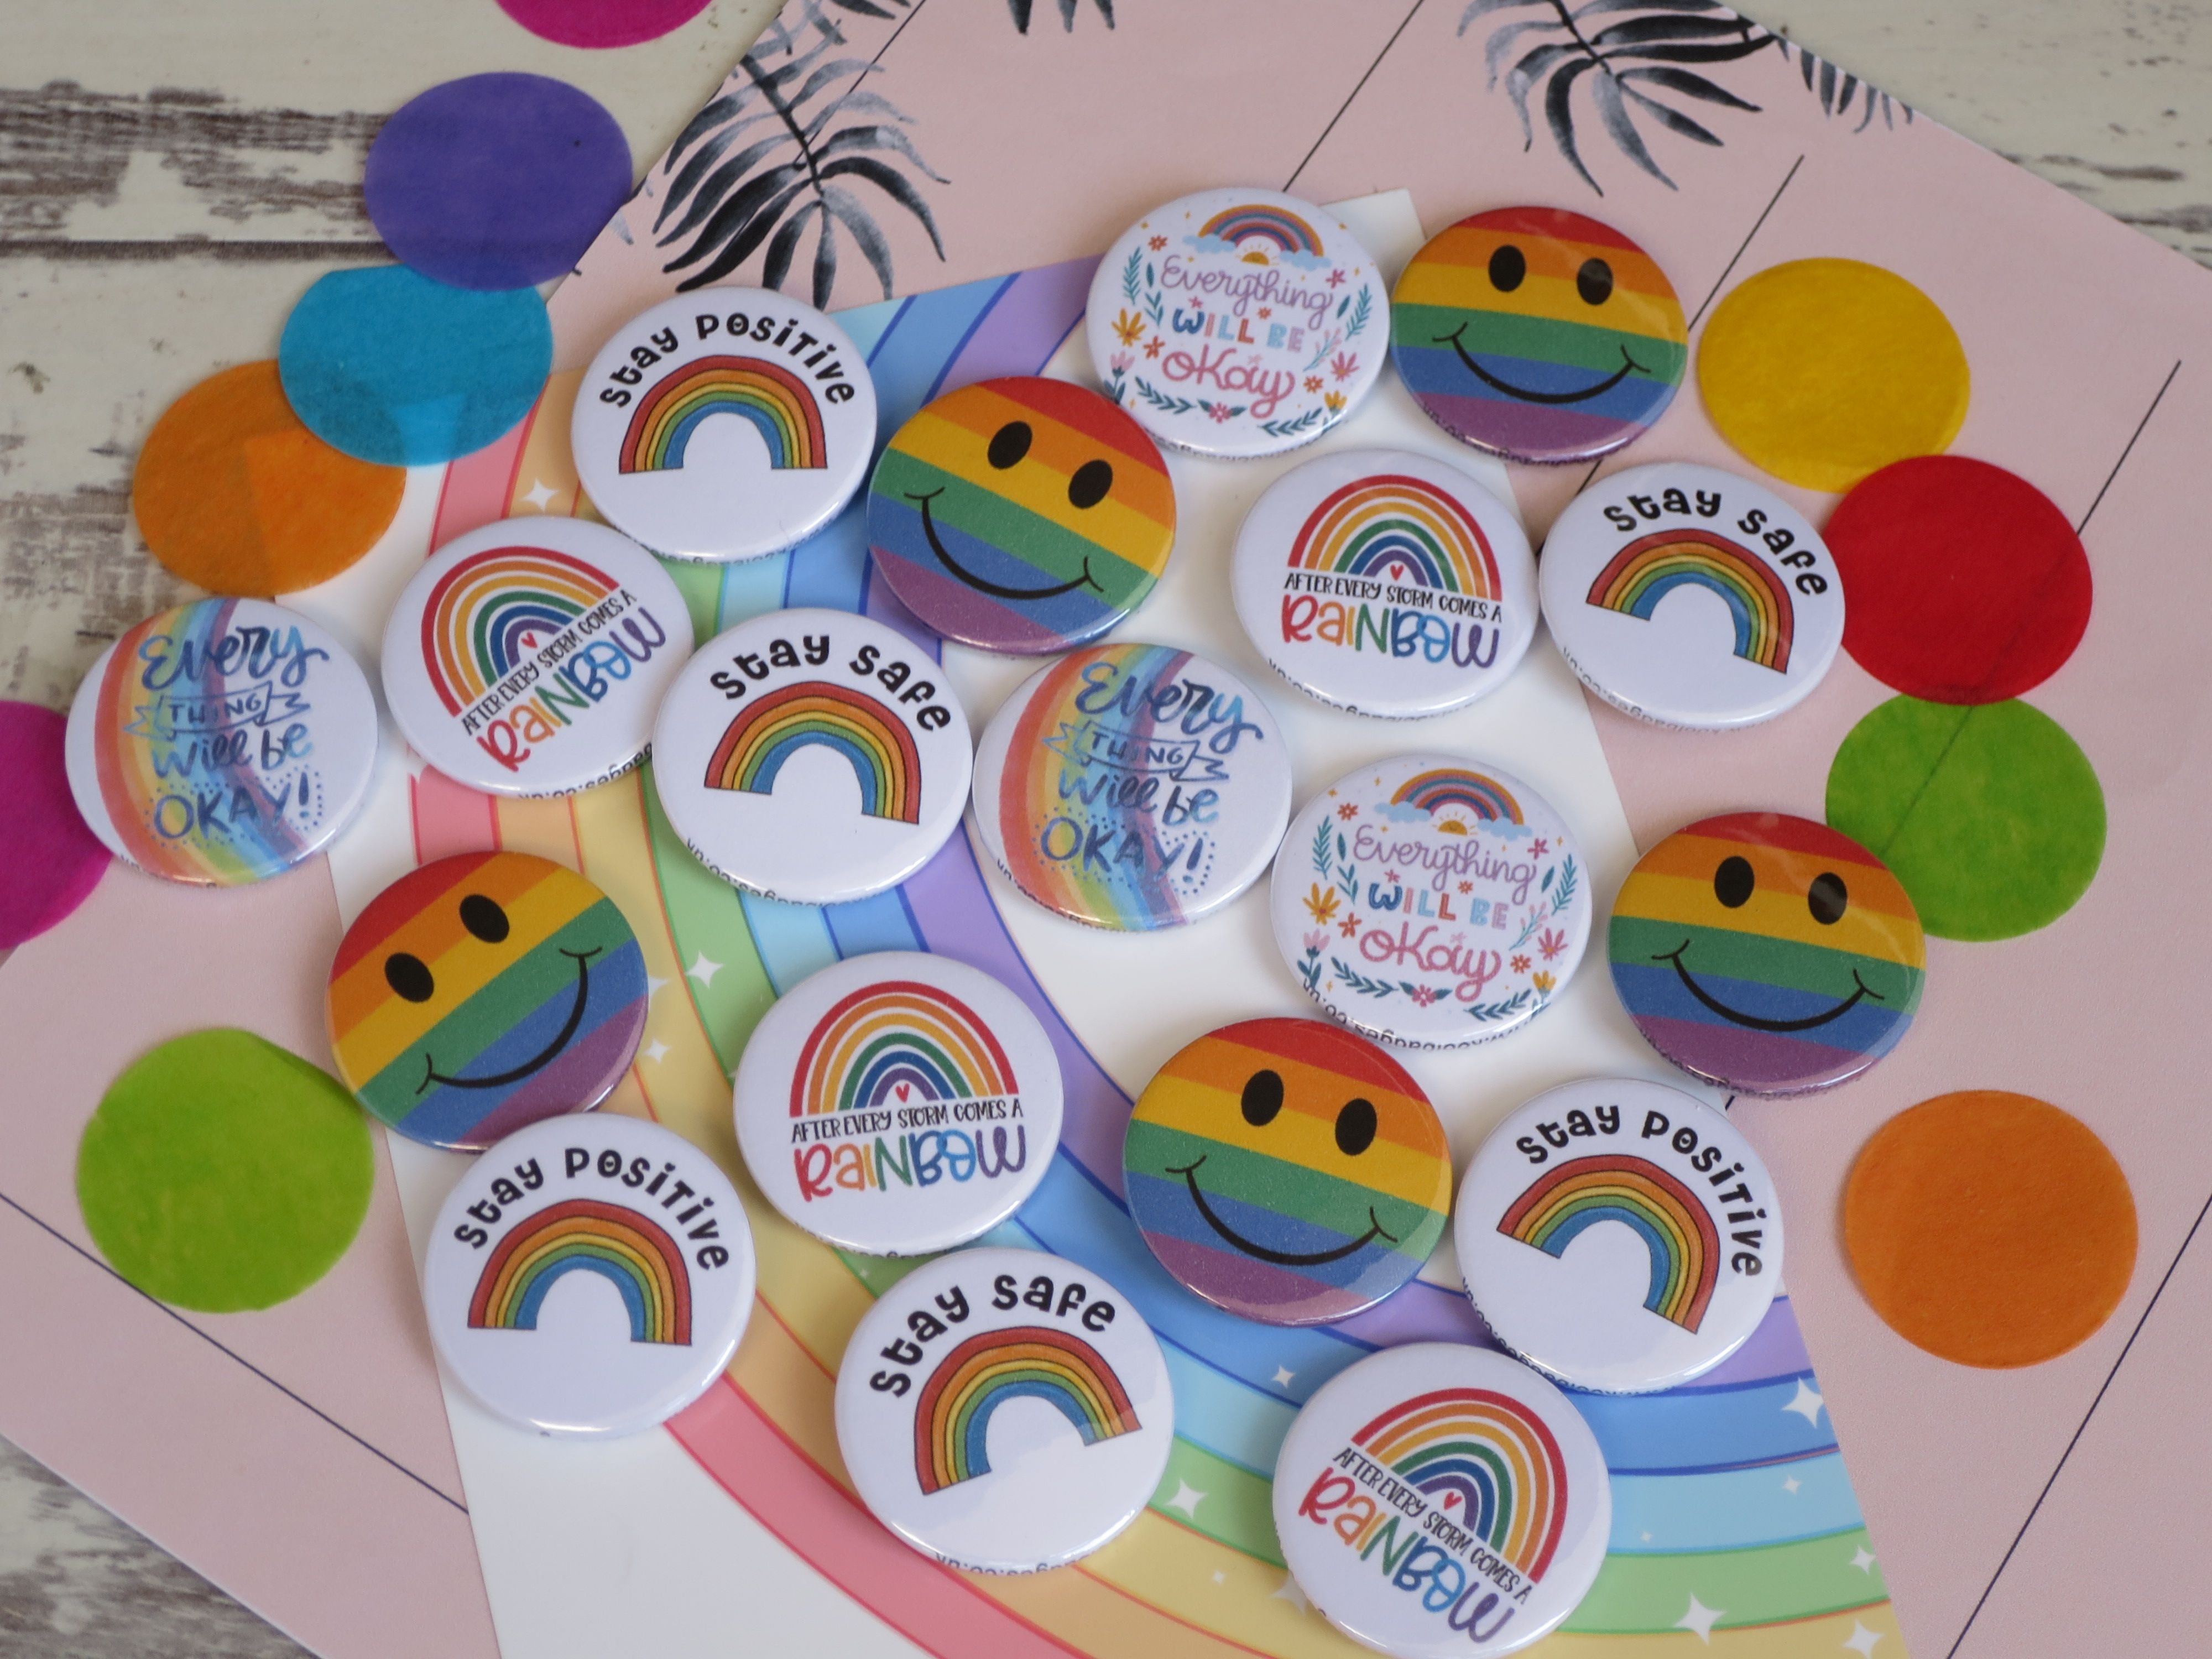 Everything will be ok rainbow positive and hero themed